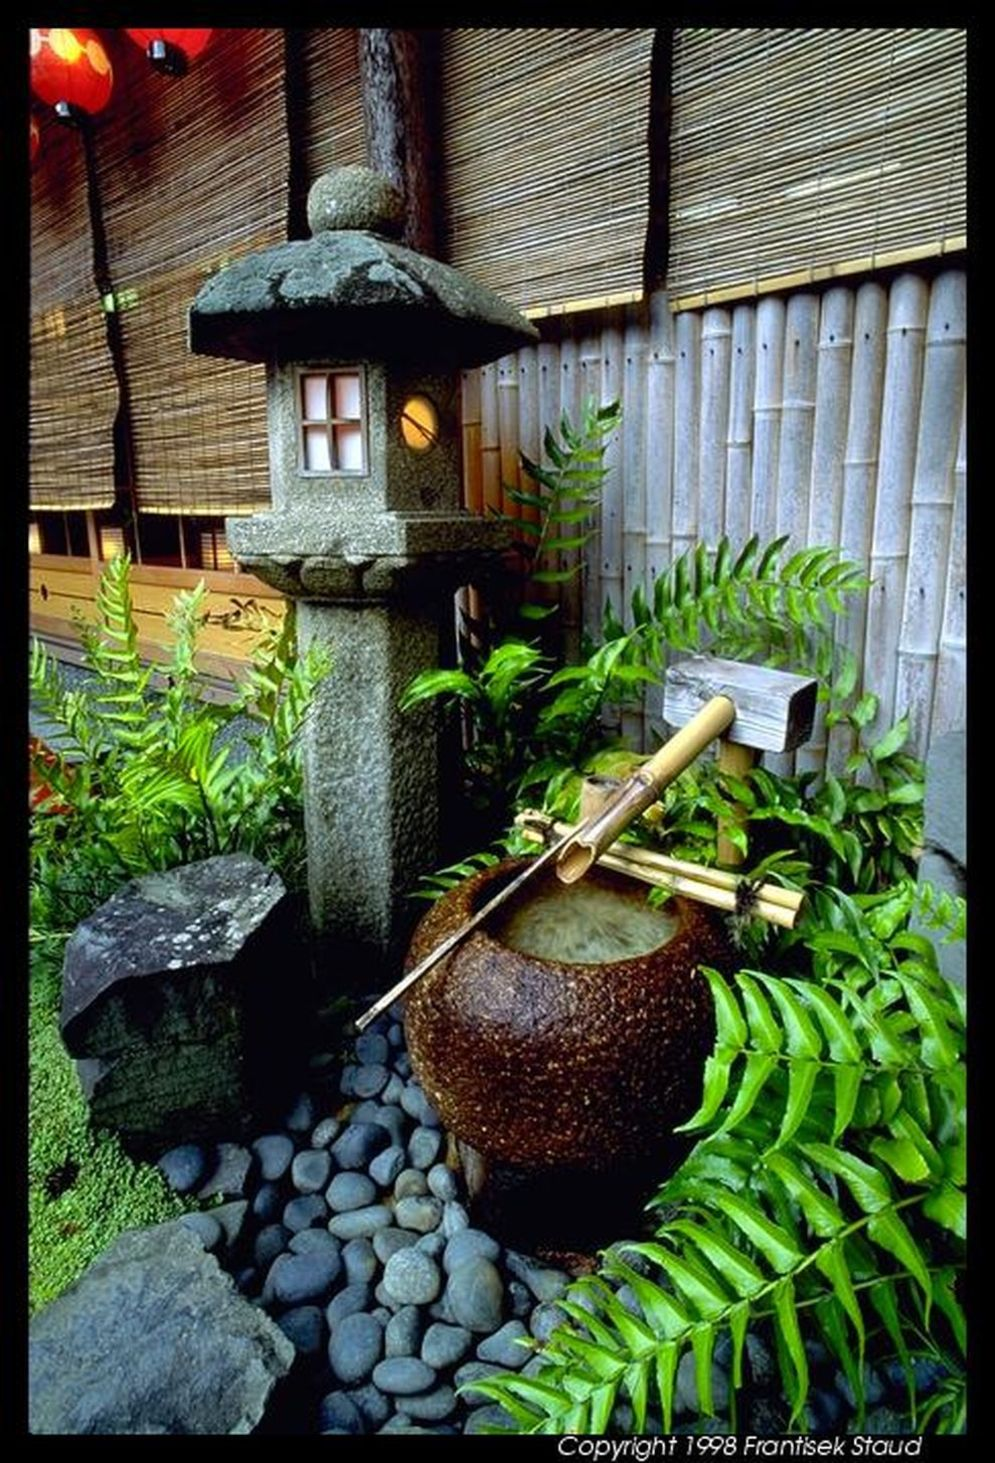 Beautiful Zen garden style with peaceful arrangements creating peaceful and harmonies display that will calm our mind Image 19